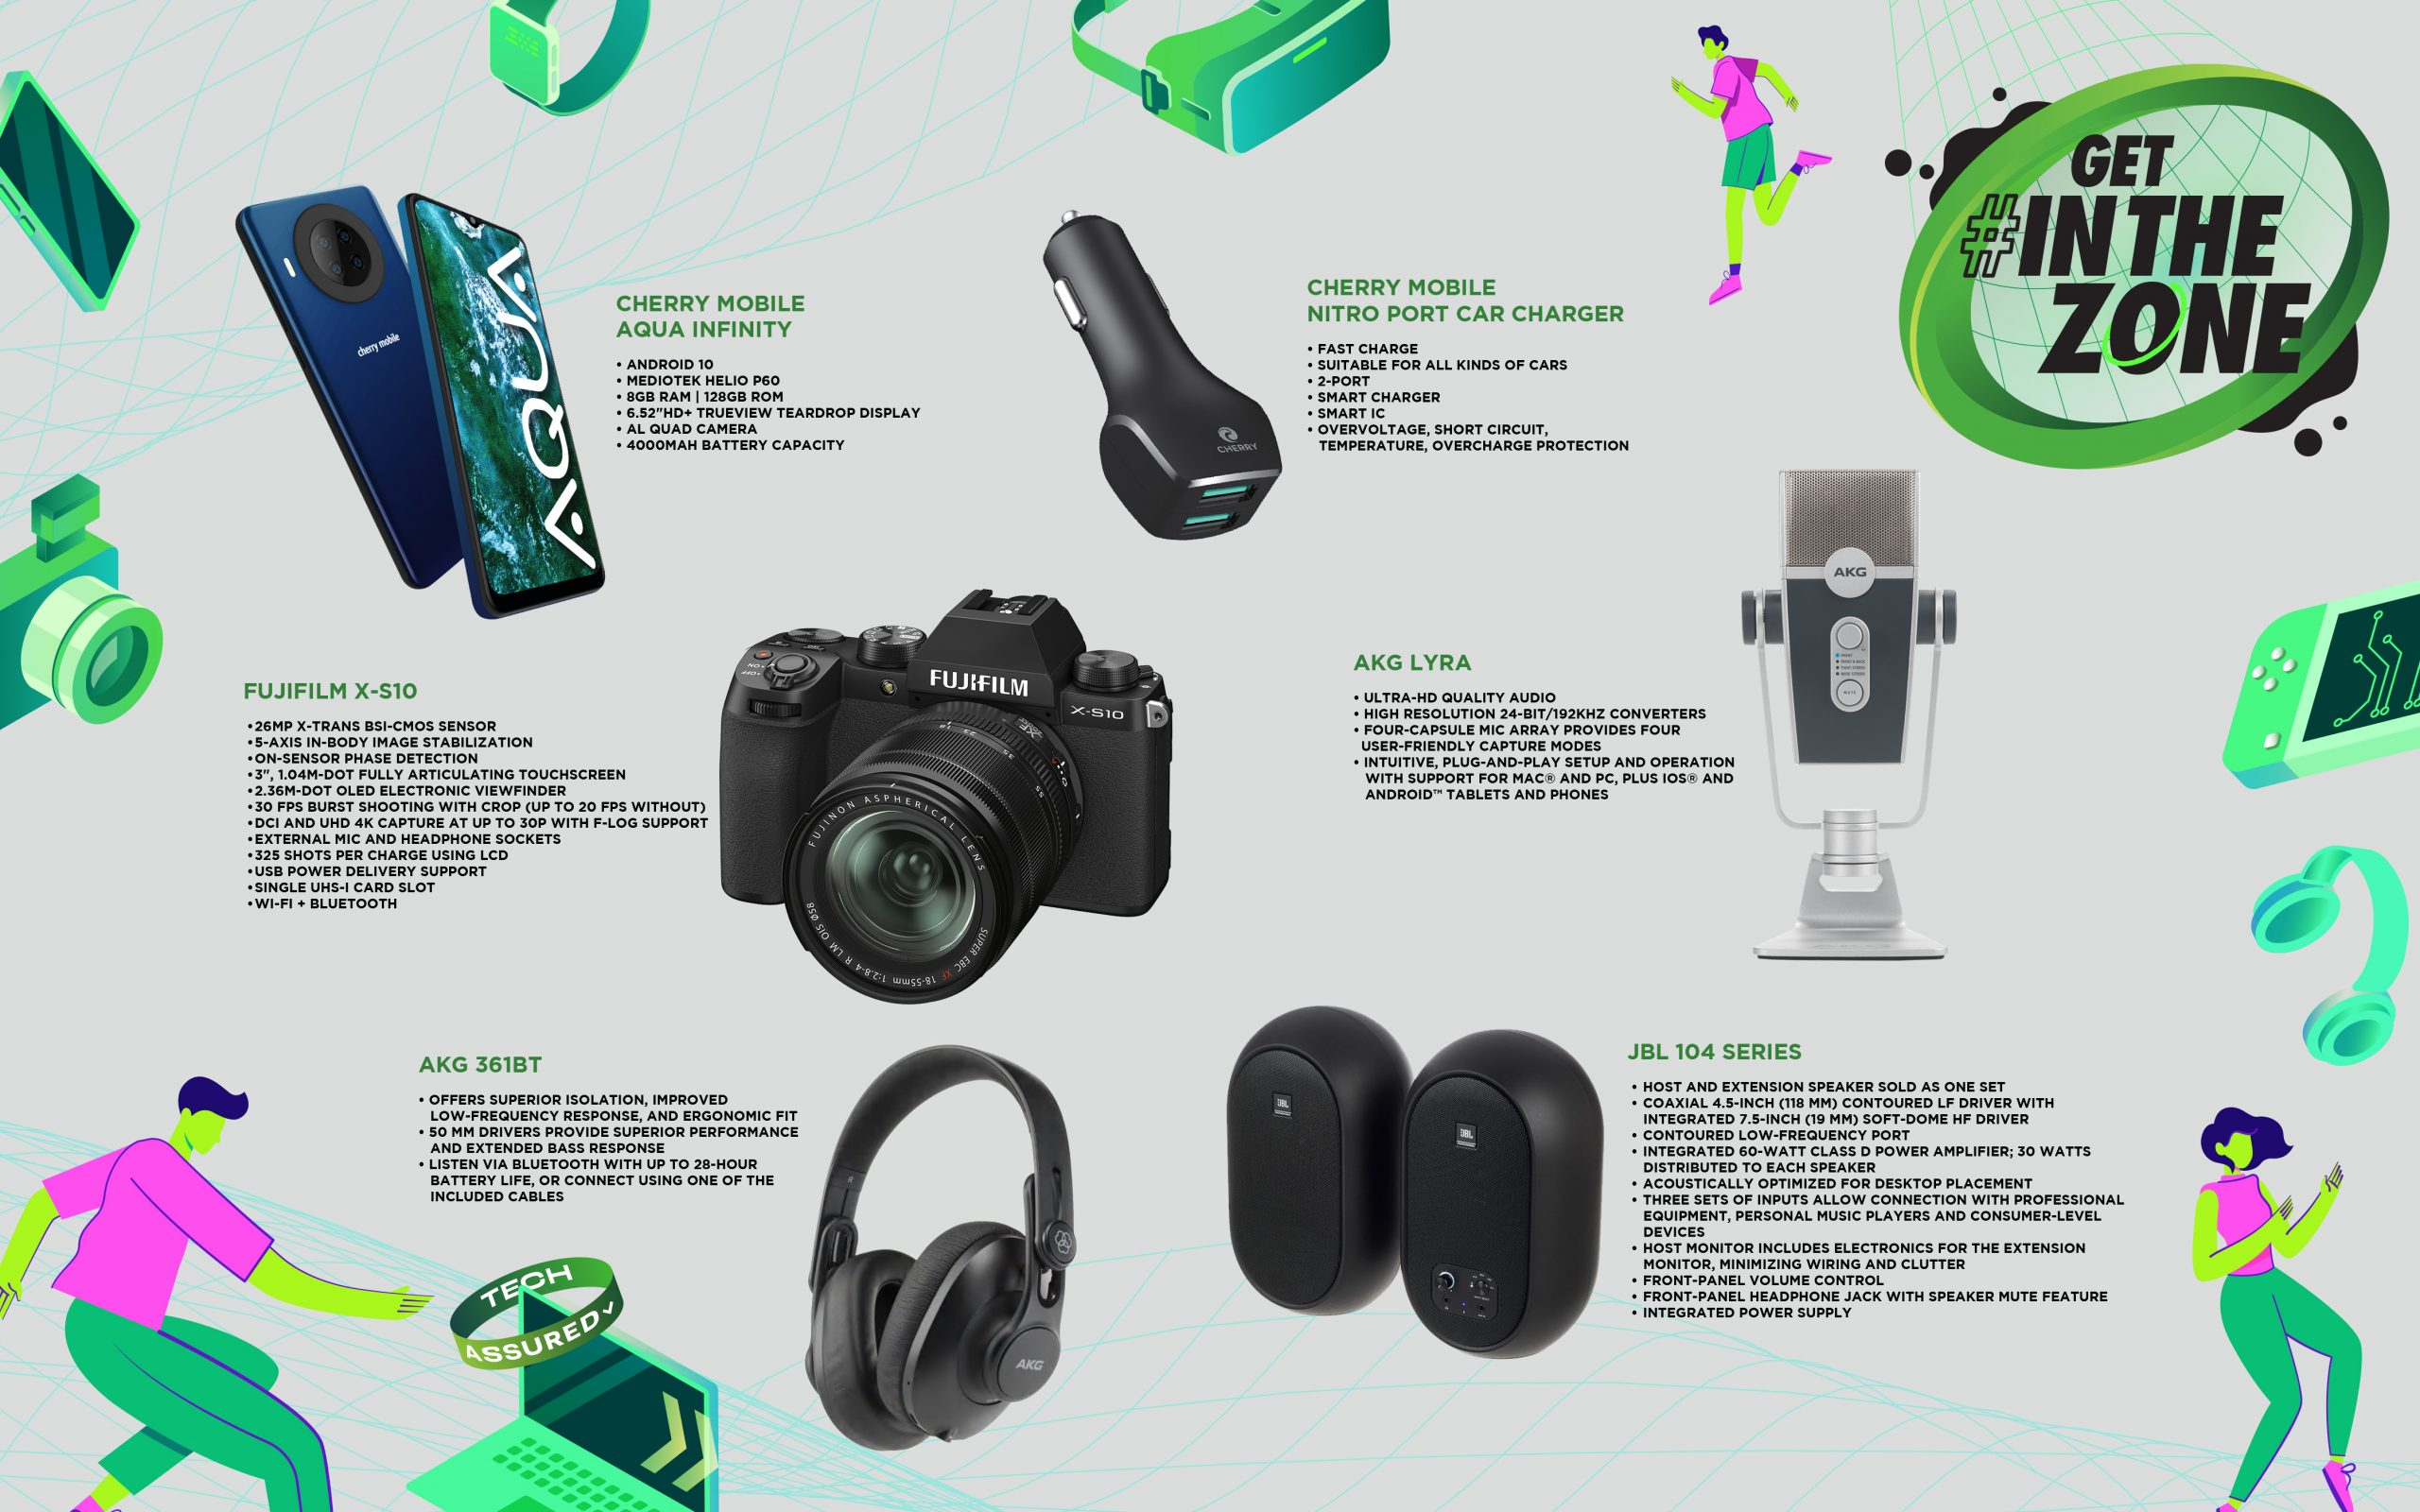 latest gadget accessories for content creation